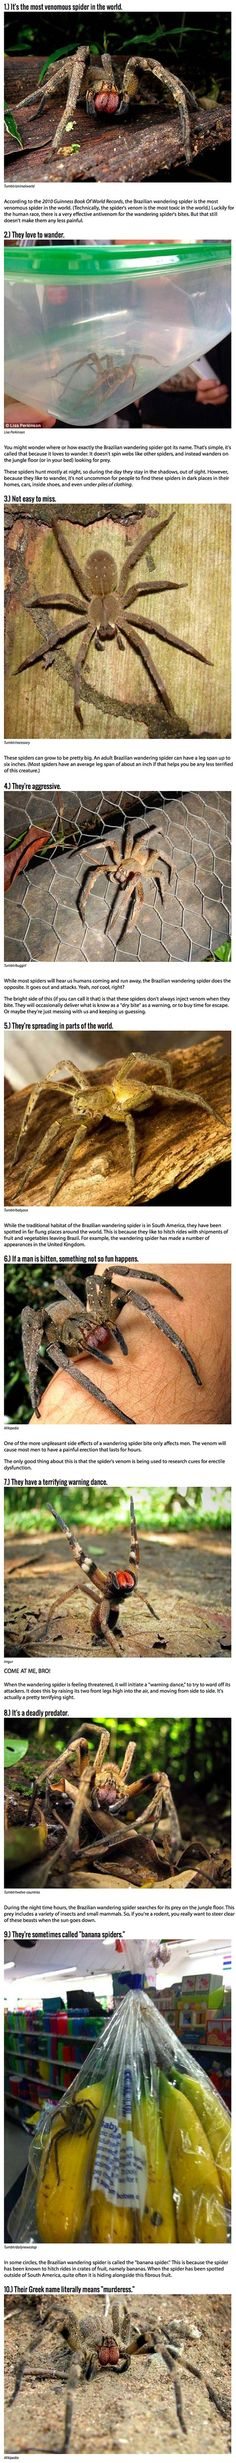 10 Reasons Why The Brazilian Wandering Spider Is Your New Nightmare.